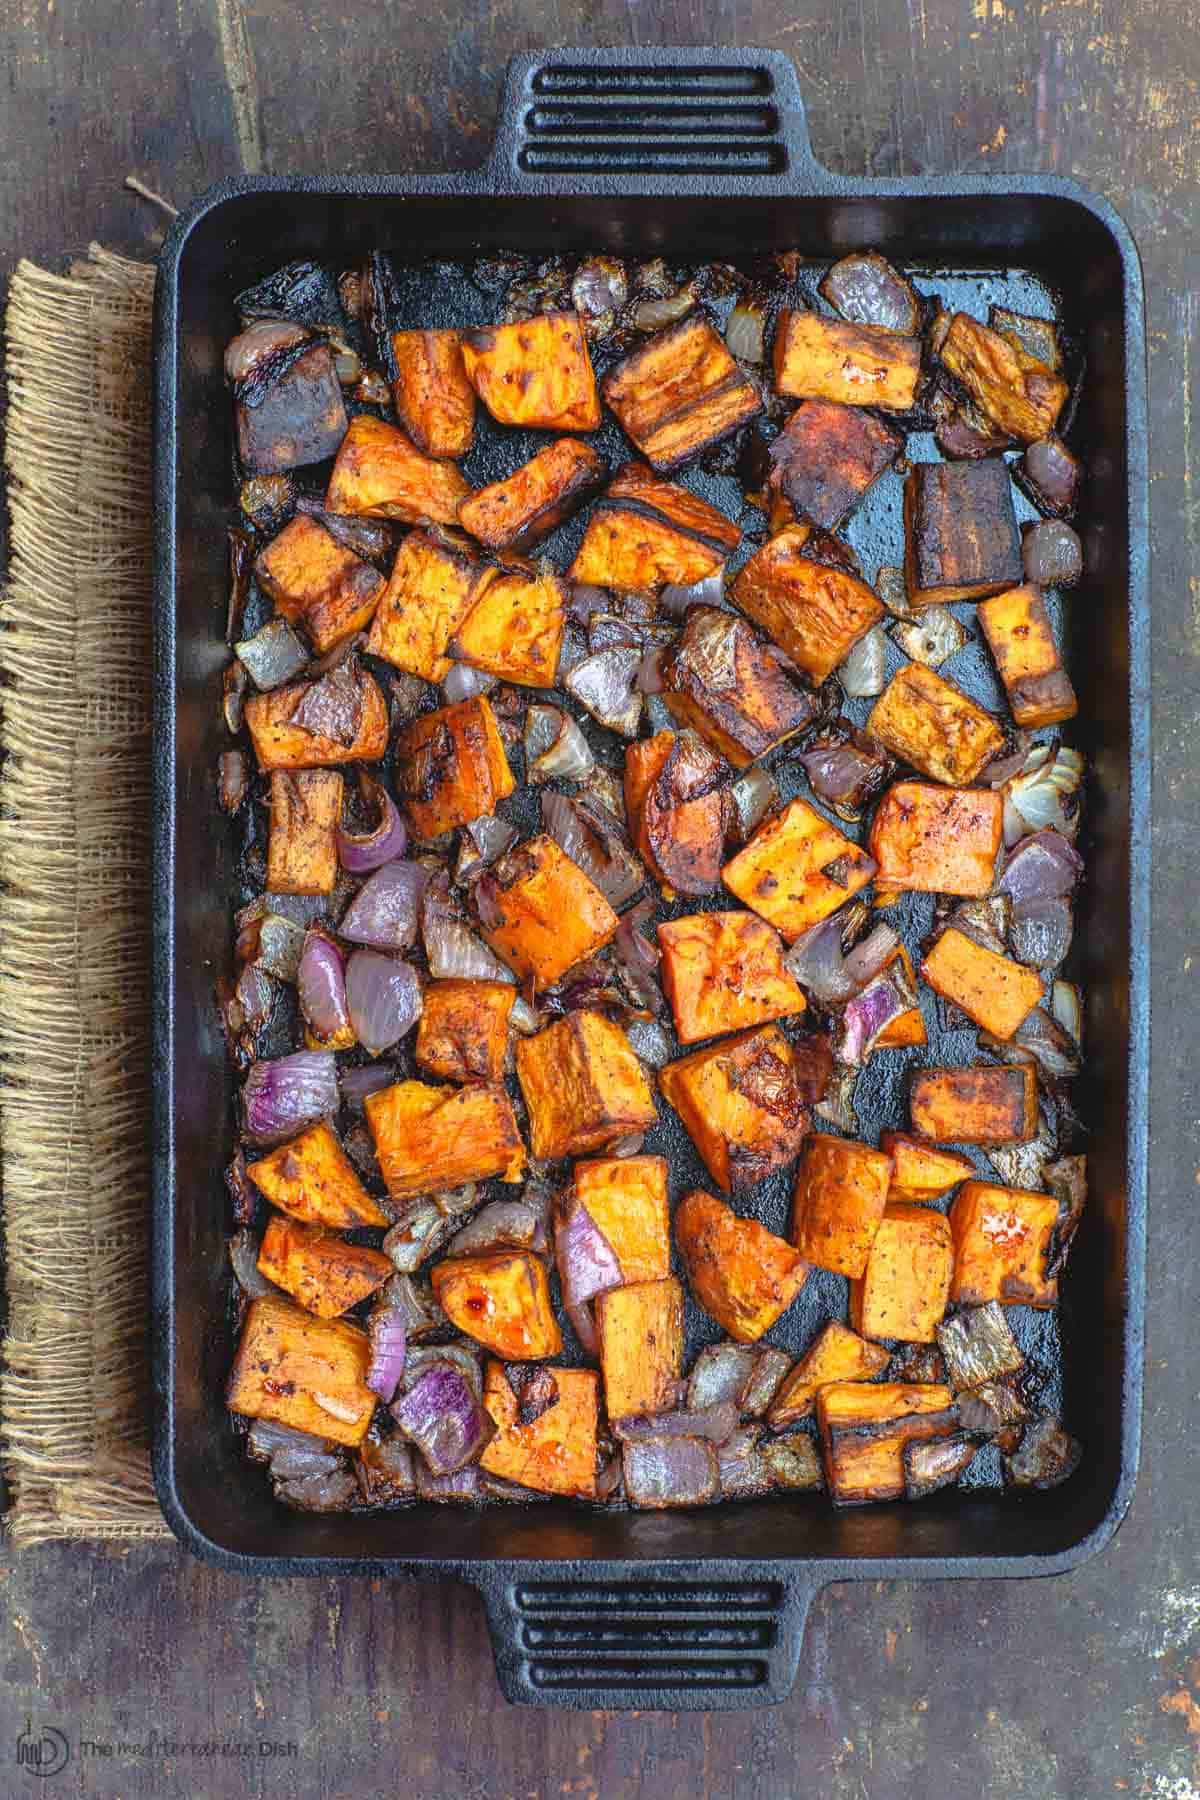 Roasted Sweet Potatoes Recipe Easy Delicous The Mediterranean Dish